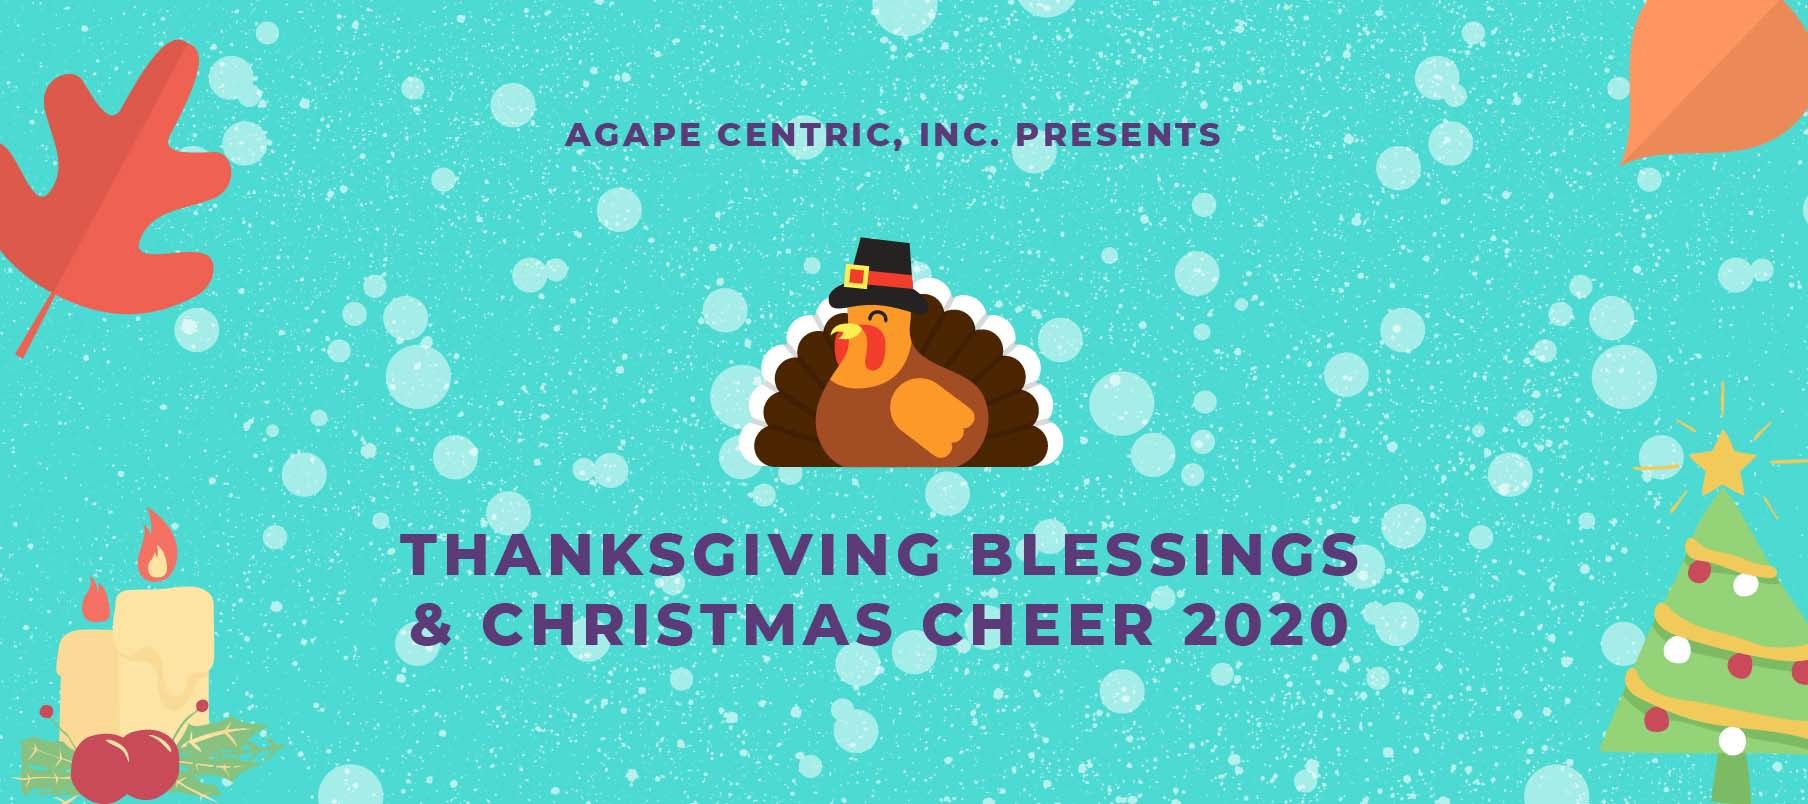 agape-centric-thanksgiving-christmas-che